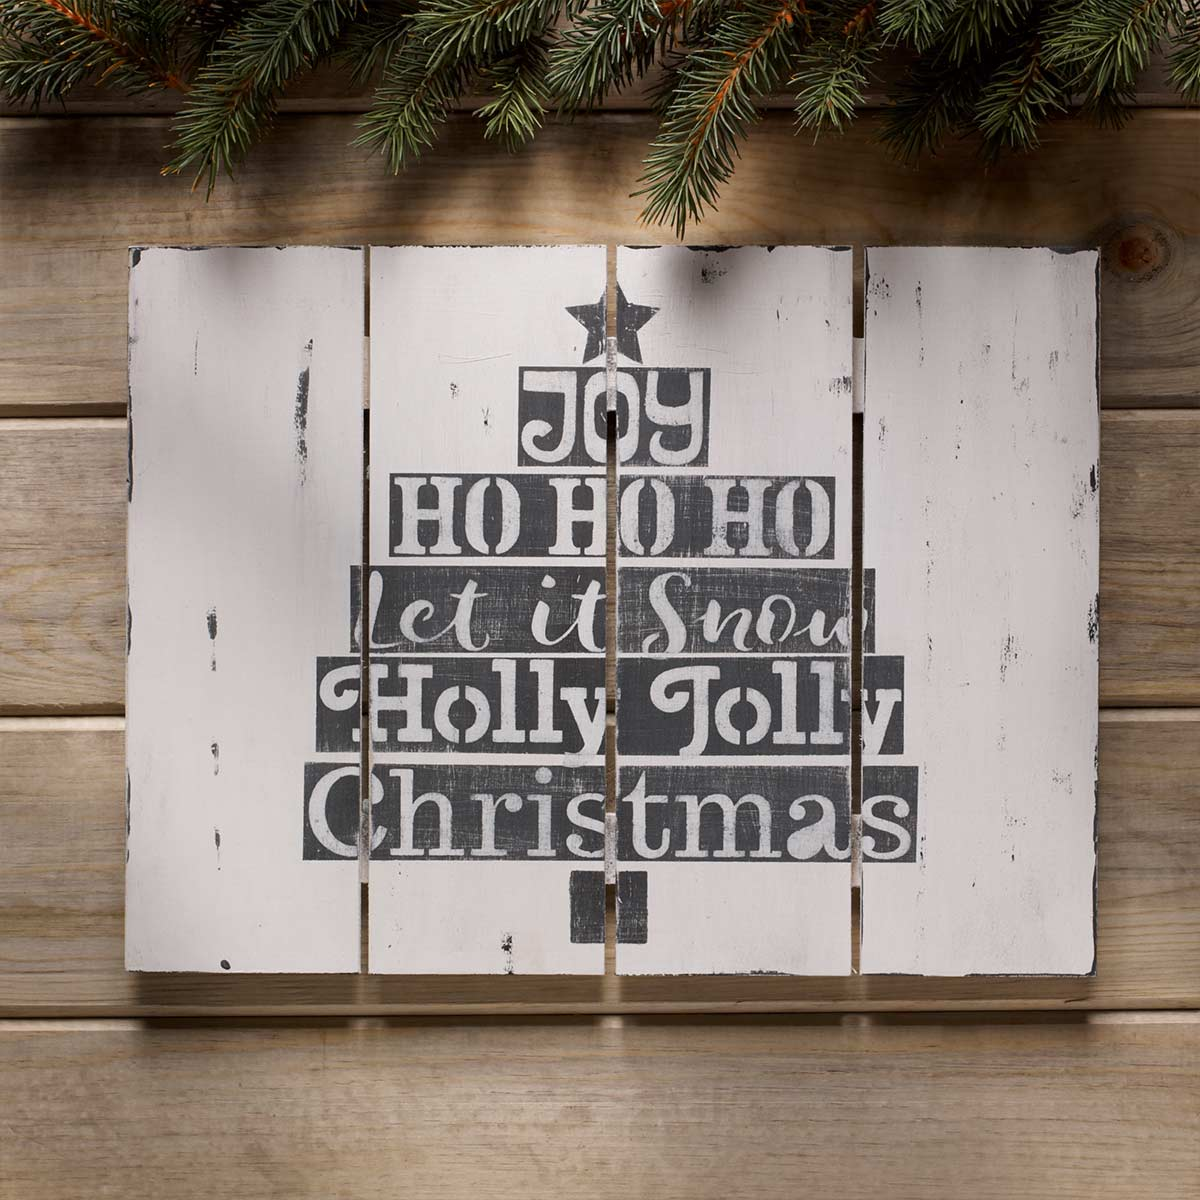 Stenciled Sign for Holidays